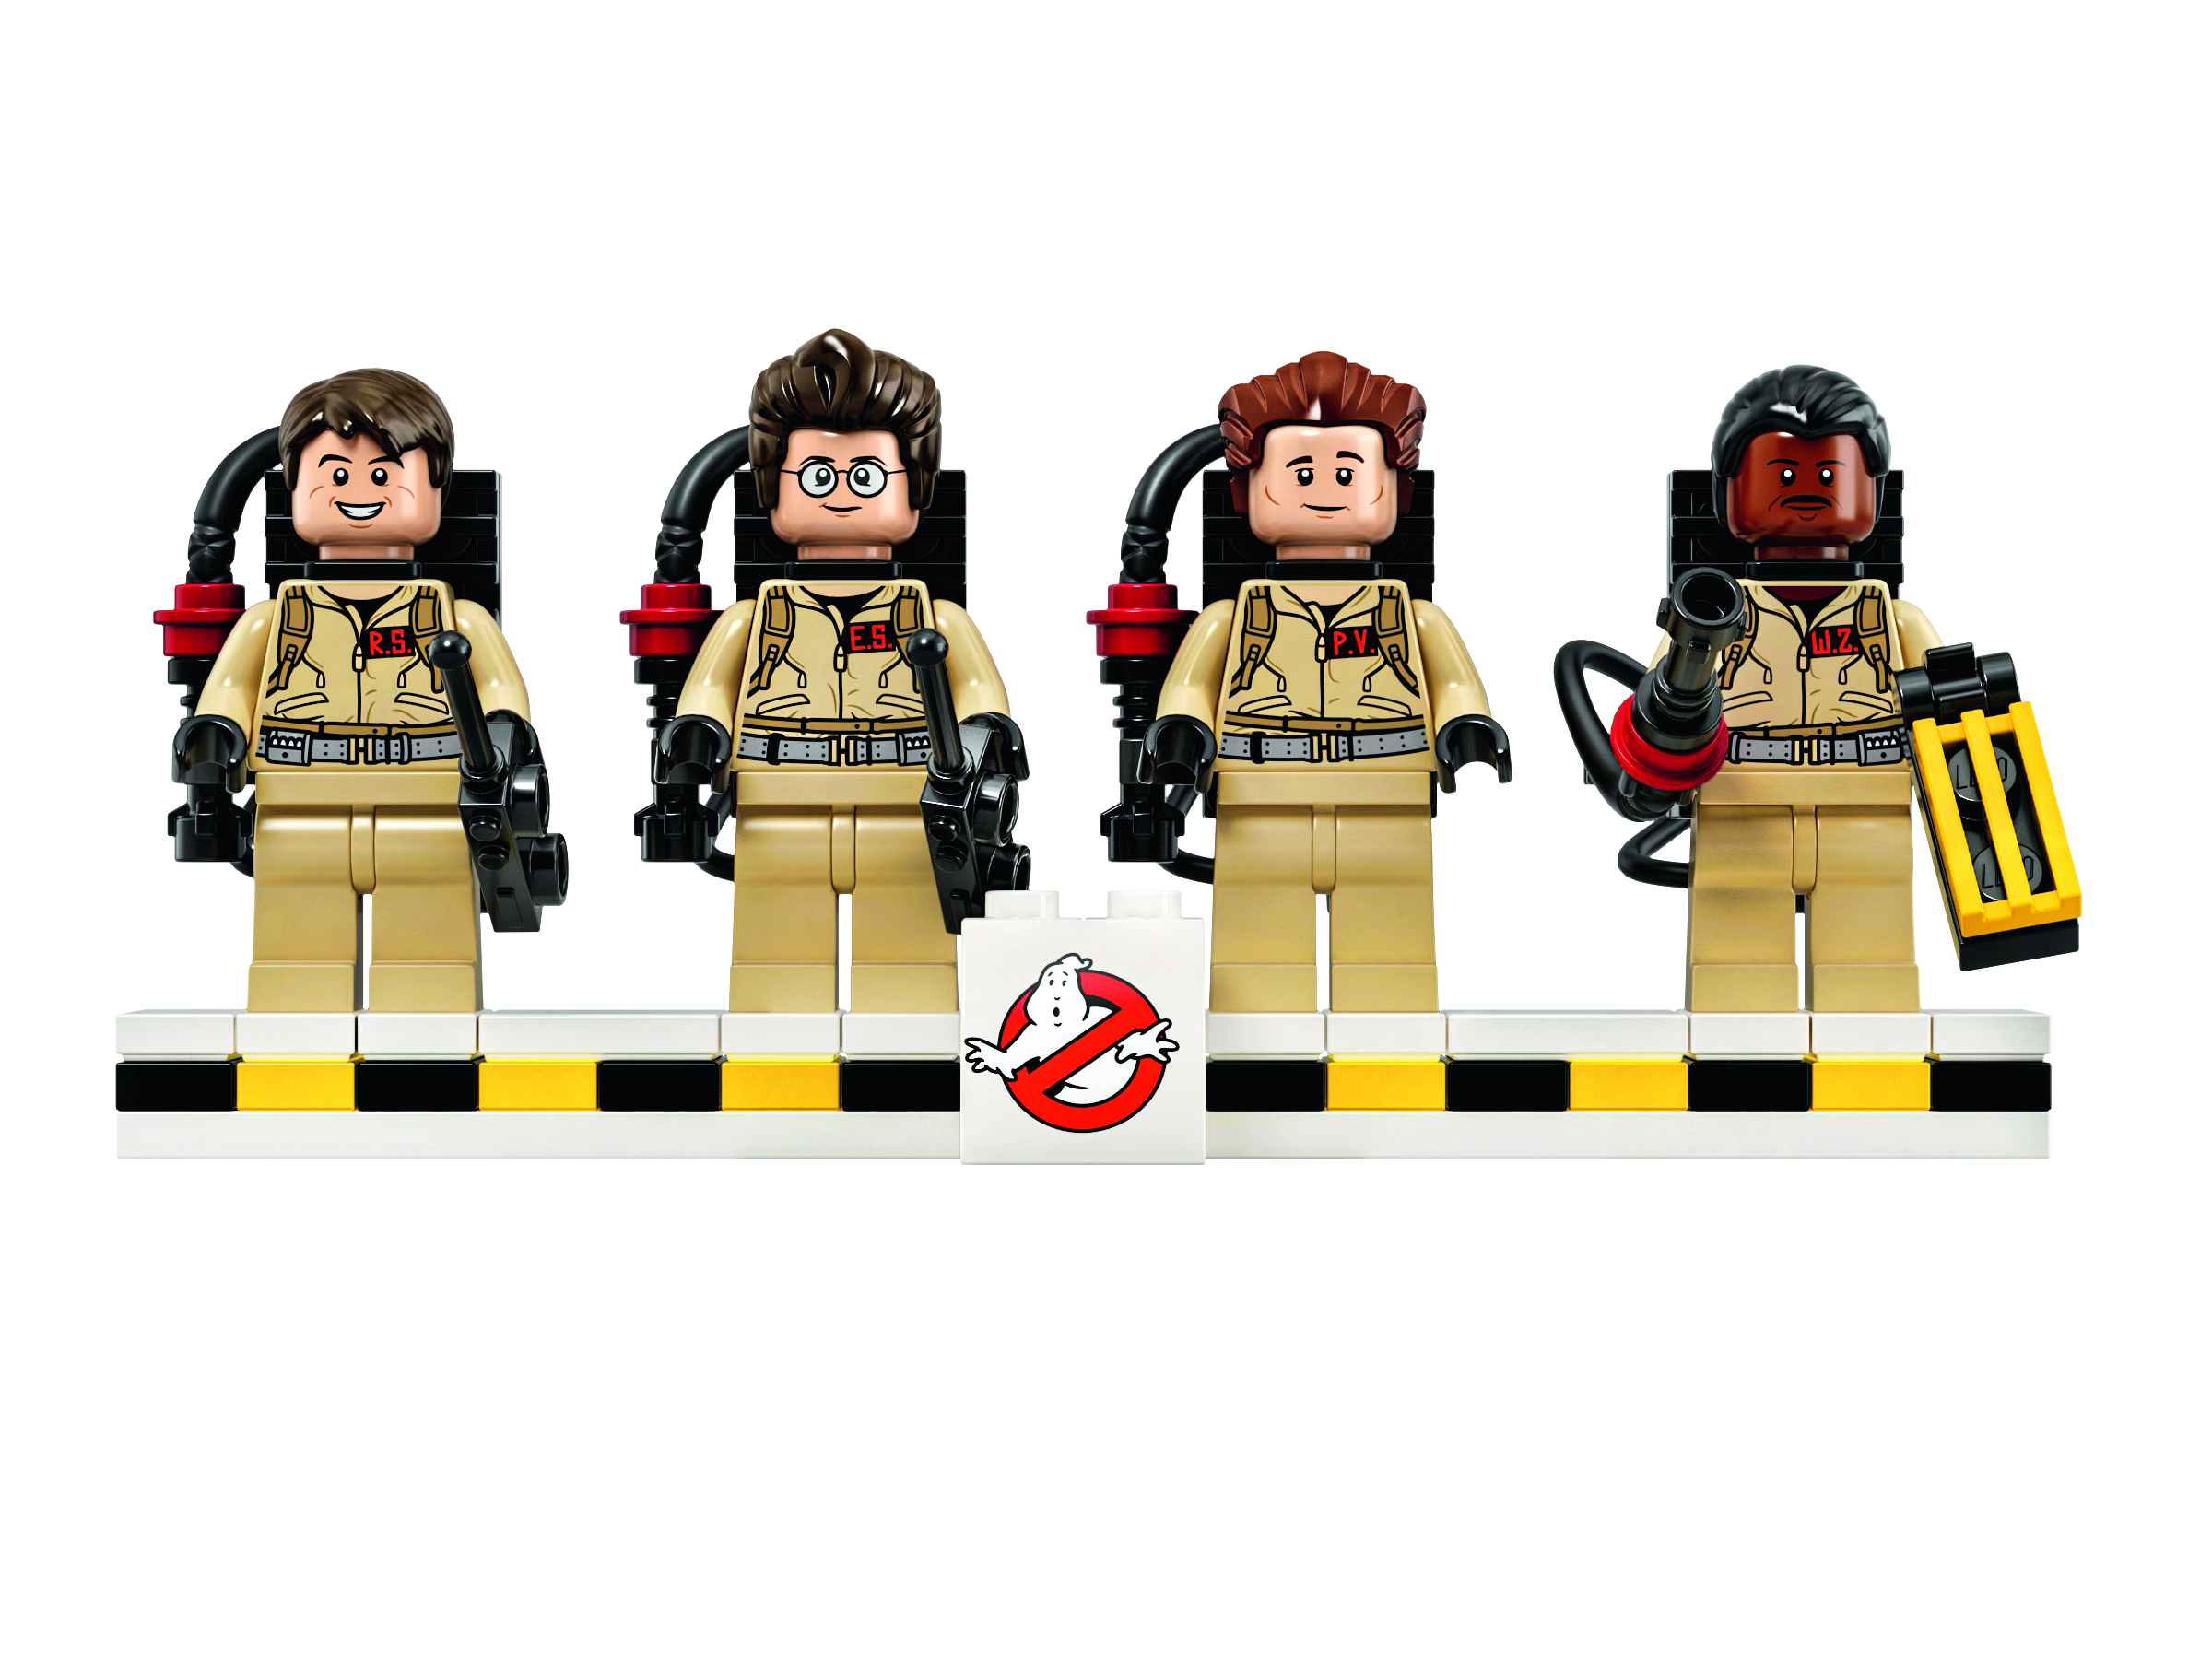 official-ghostbusters-lego-set-photos-01